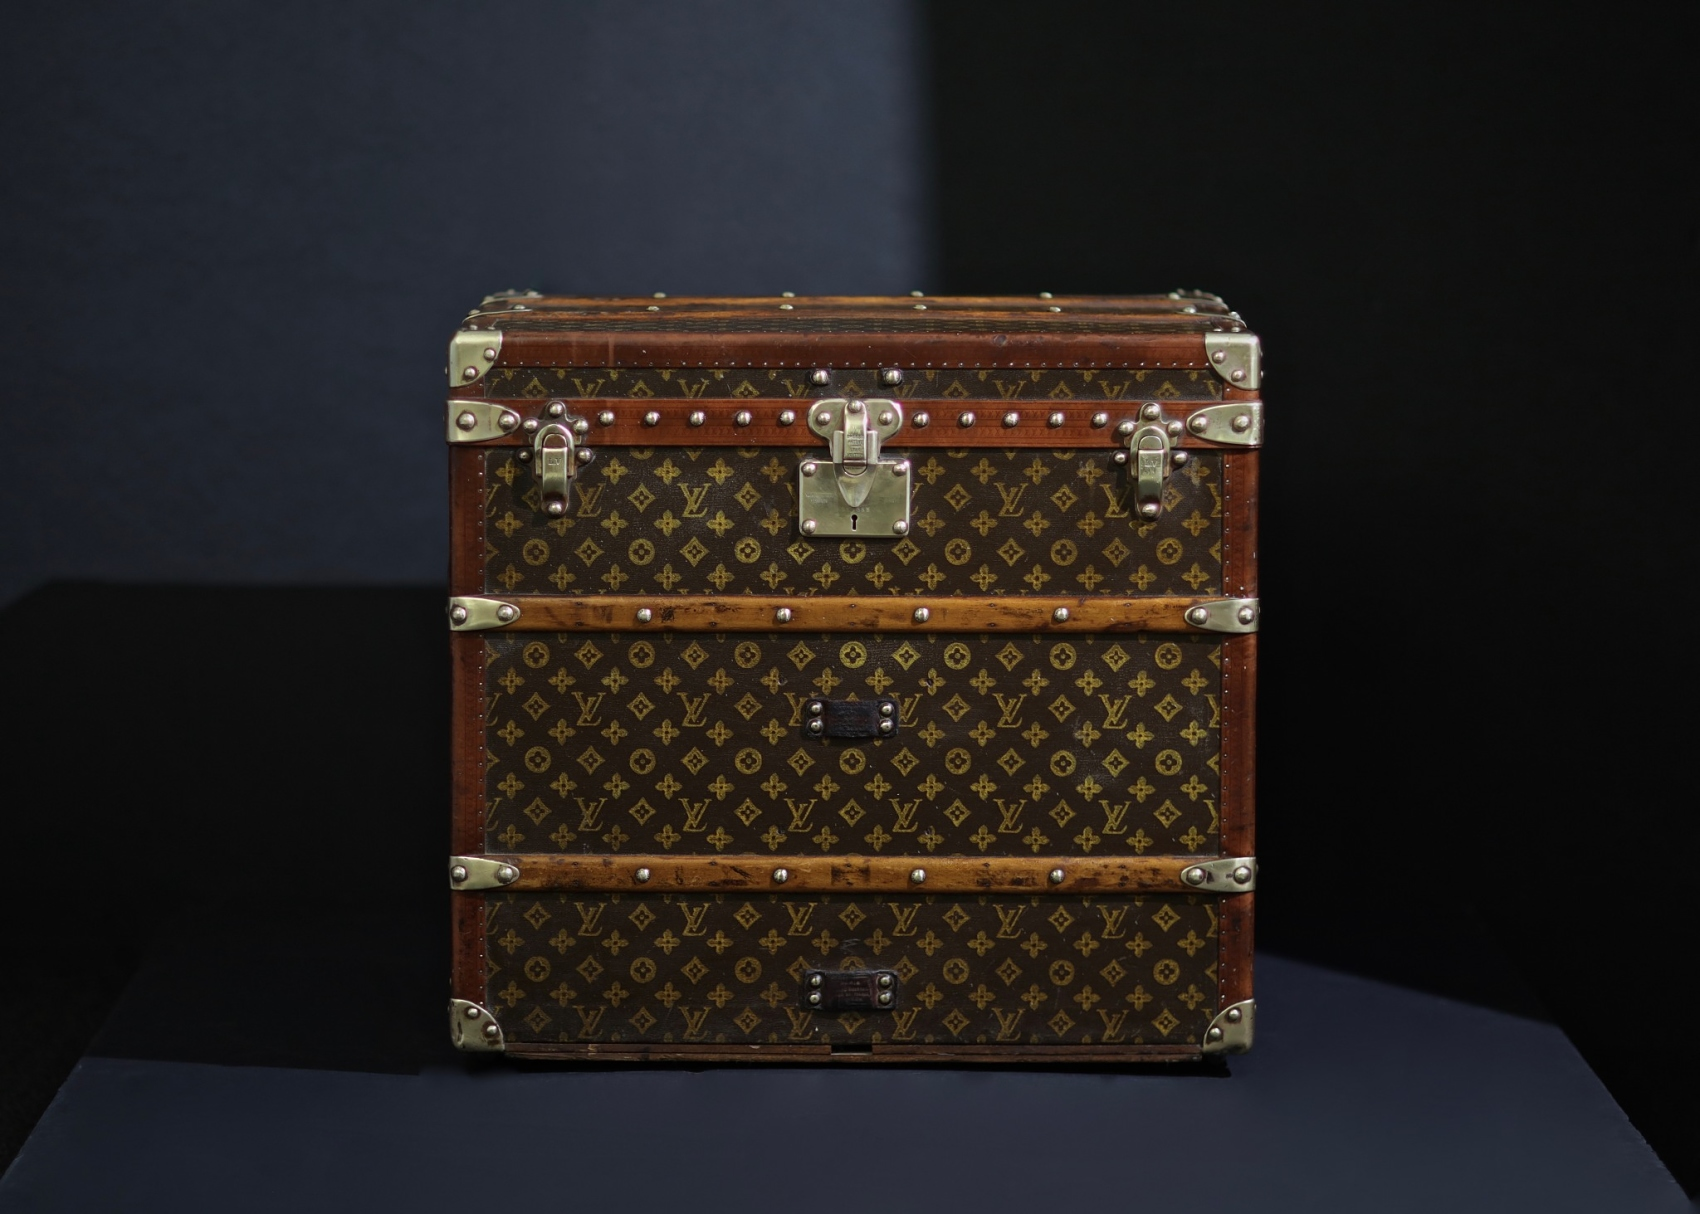 the-well-traveled-trunk-louis-vuitton-thumbnail-product-5683-1